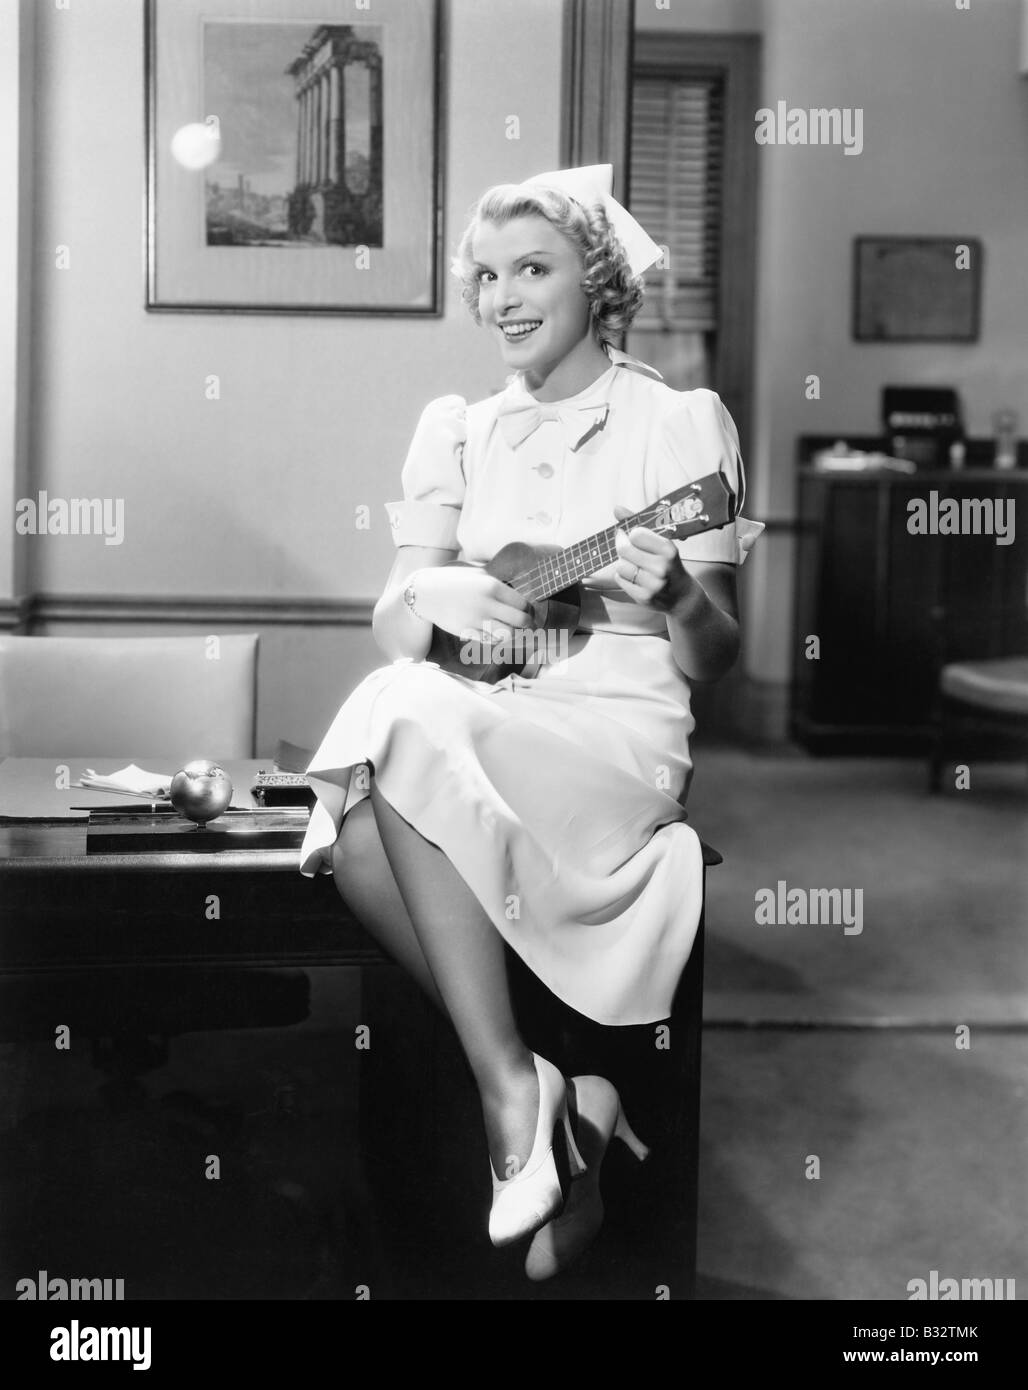 Portrait of a female nurse sitting on a table and playing a guitar - Stock Image